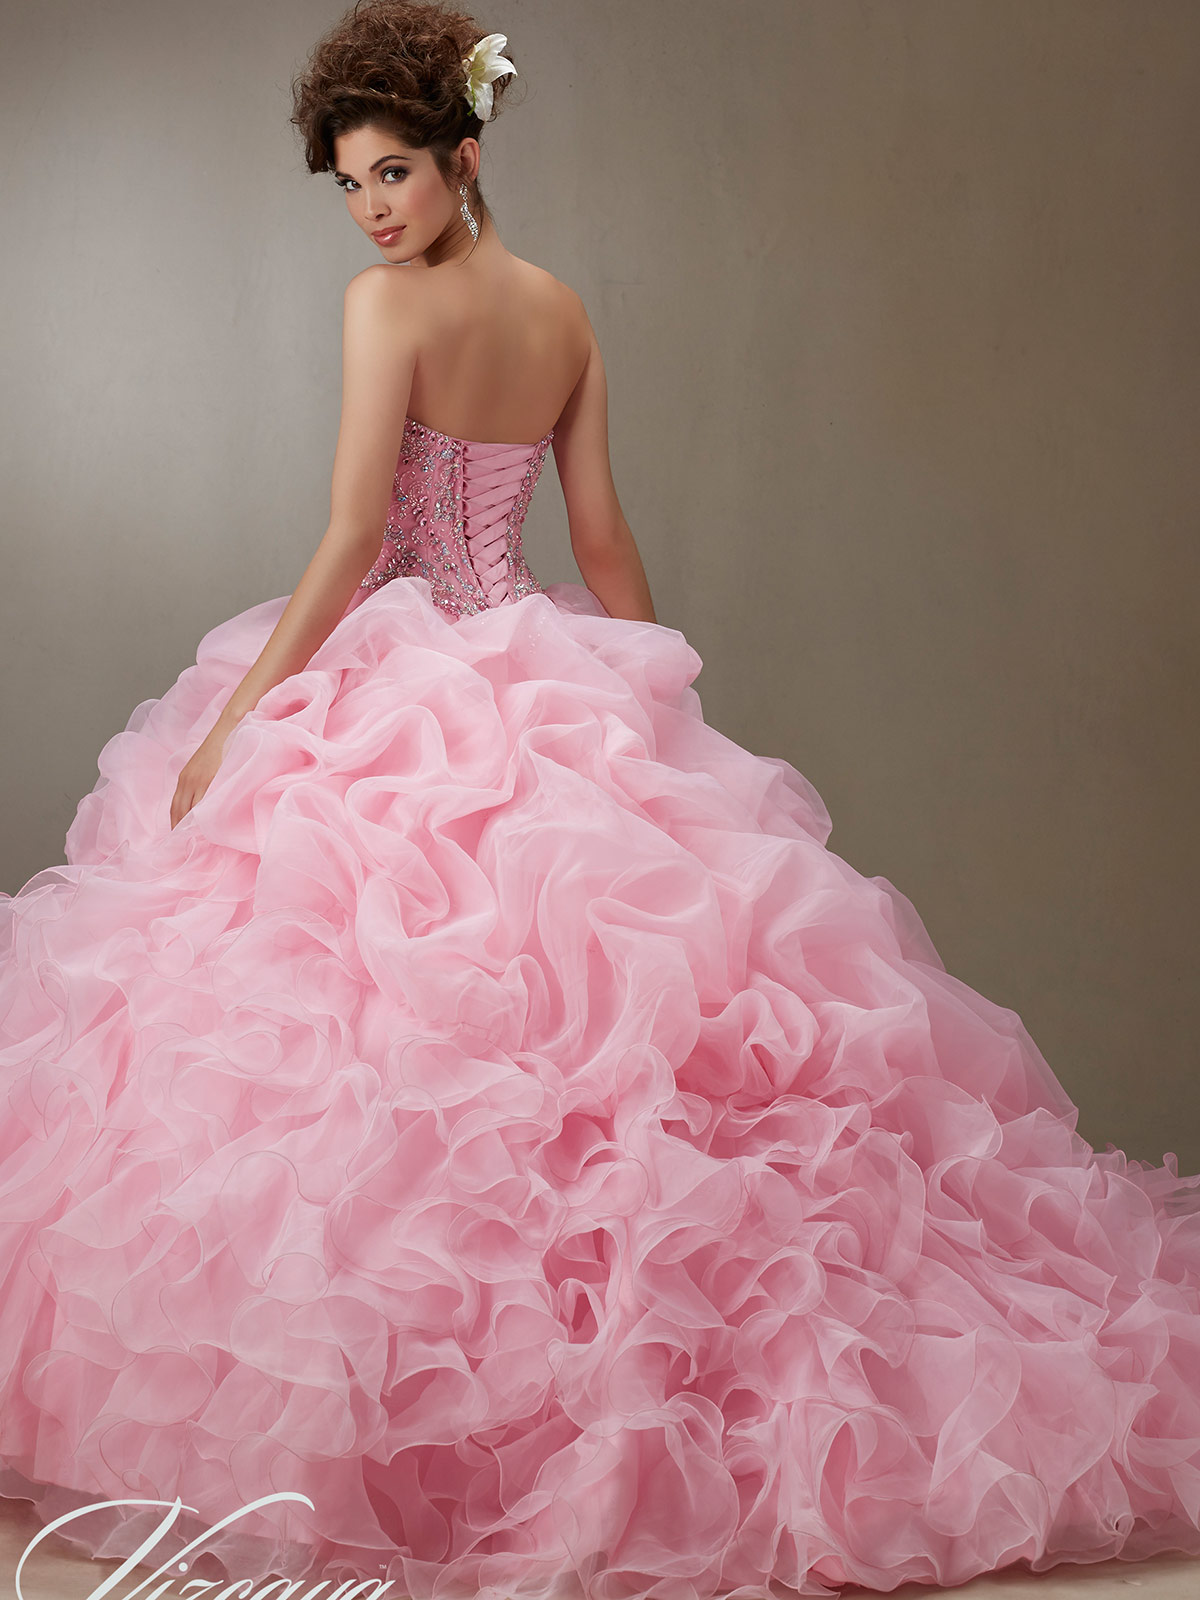 Vizcaya Quinceañera 89075 Ruffled Skirt Ball Gown|DimitraDesigns.com